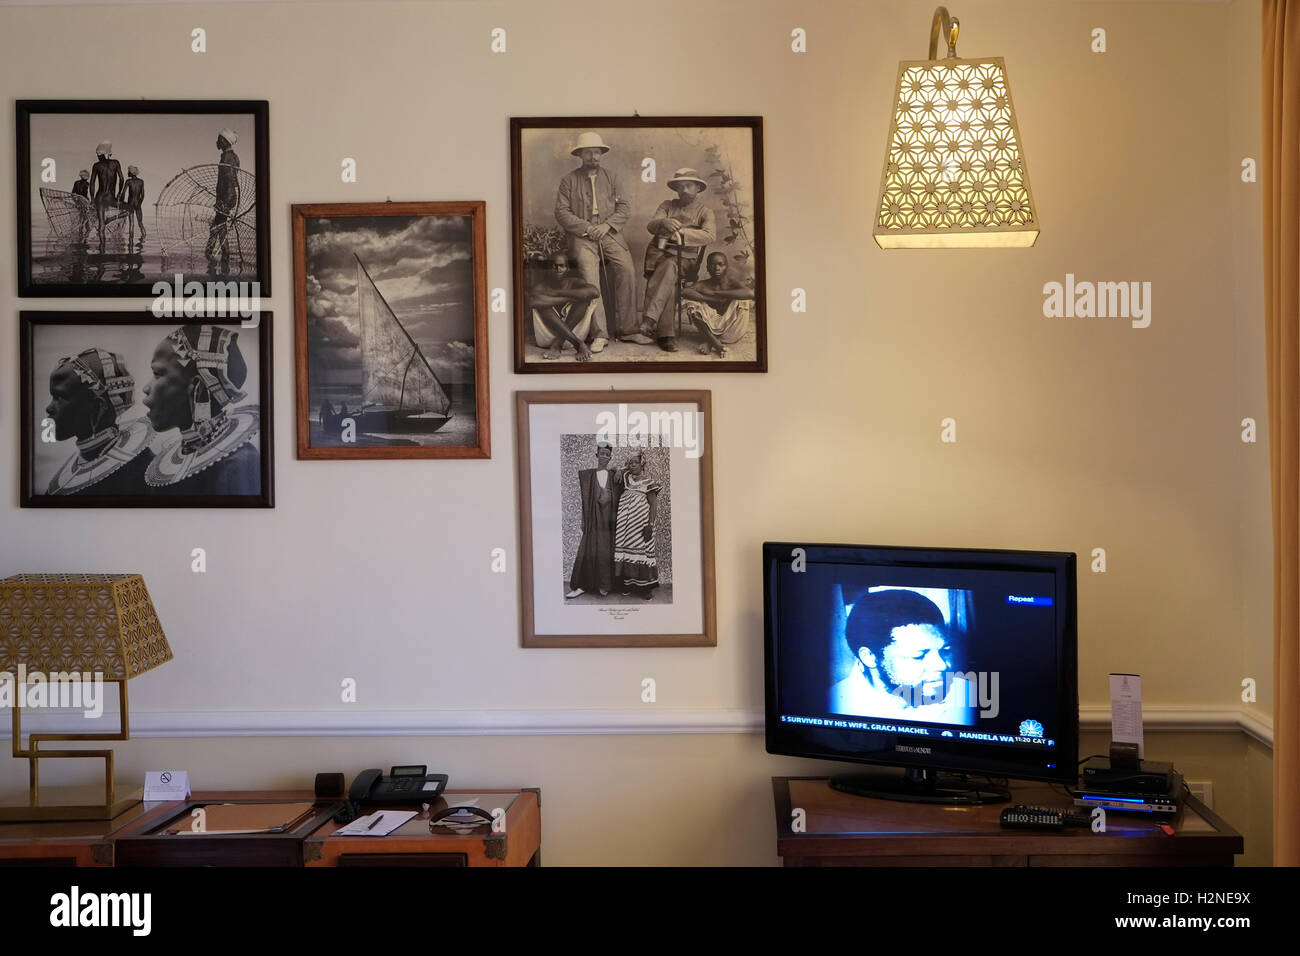 A film about Nelson Mandela is seen in a TV monitor in a room decorated with colonialist old photographs in Hideaway - Stock Image